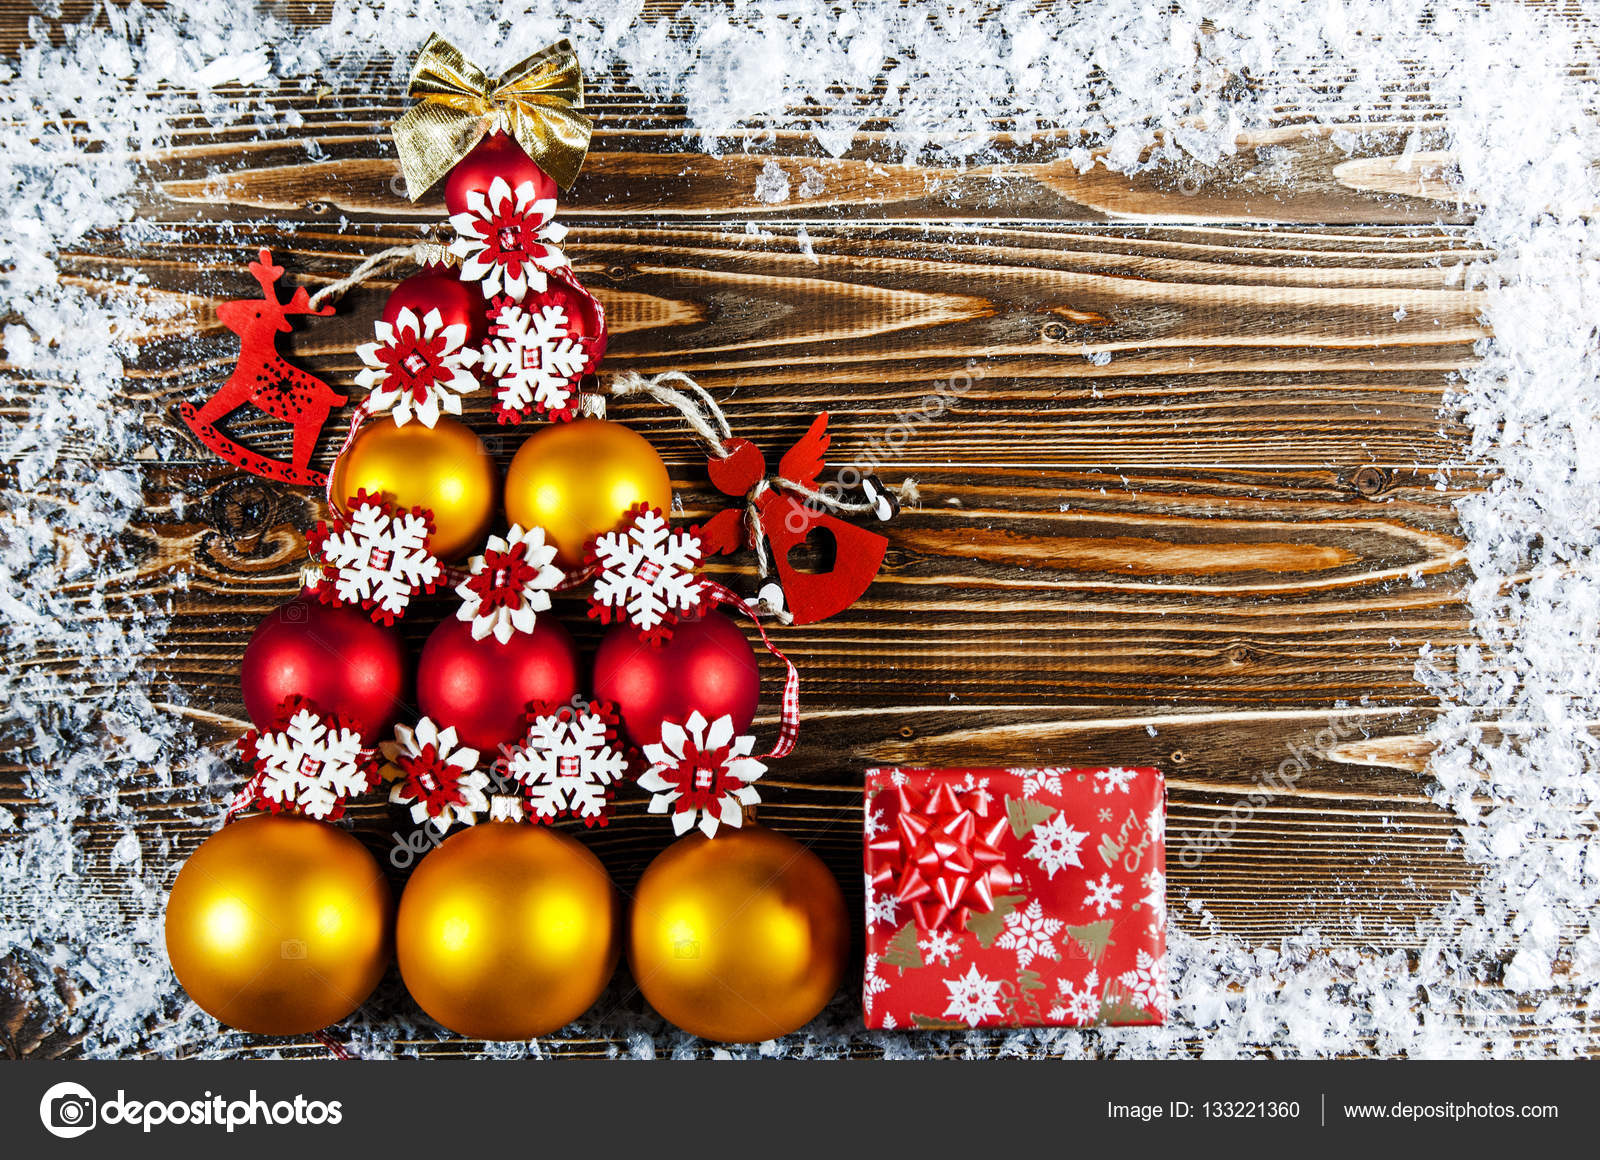 Christmas Tree Lined With Red And Gold Balls Toys Lie On A Wooden Surface Next To The Is Gift Toy In